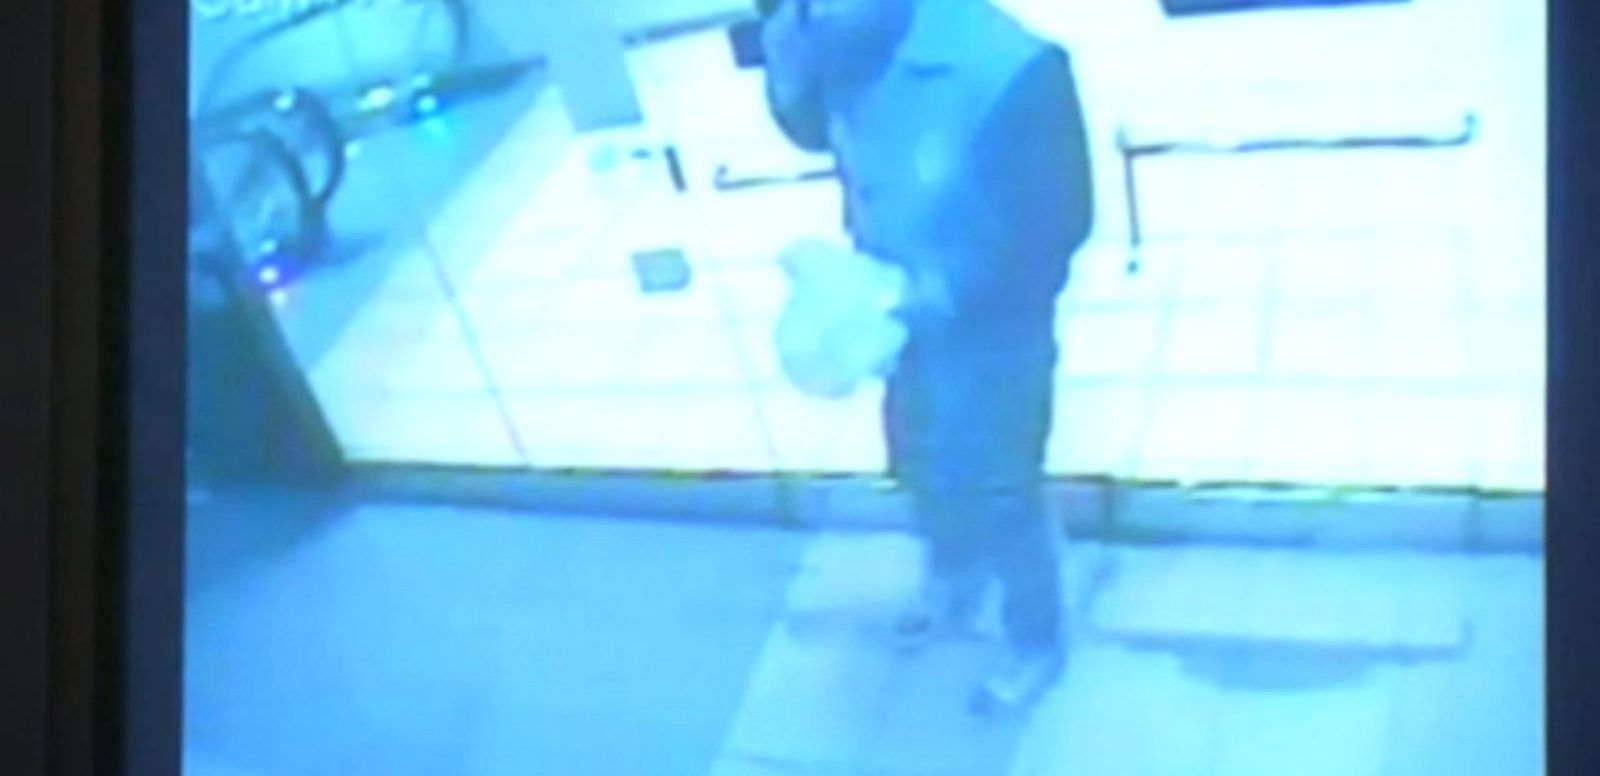 VIDEO: Authorities release surveillance video of the gunman at a shopping mall in Brooklyn just hours before the shooting, carrying a bag believed to contain a gun.